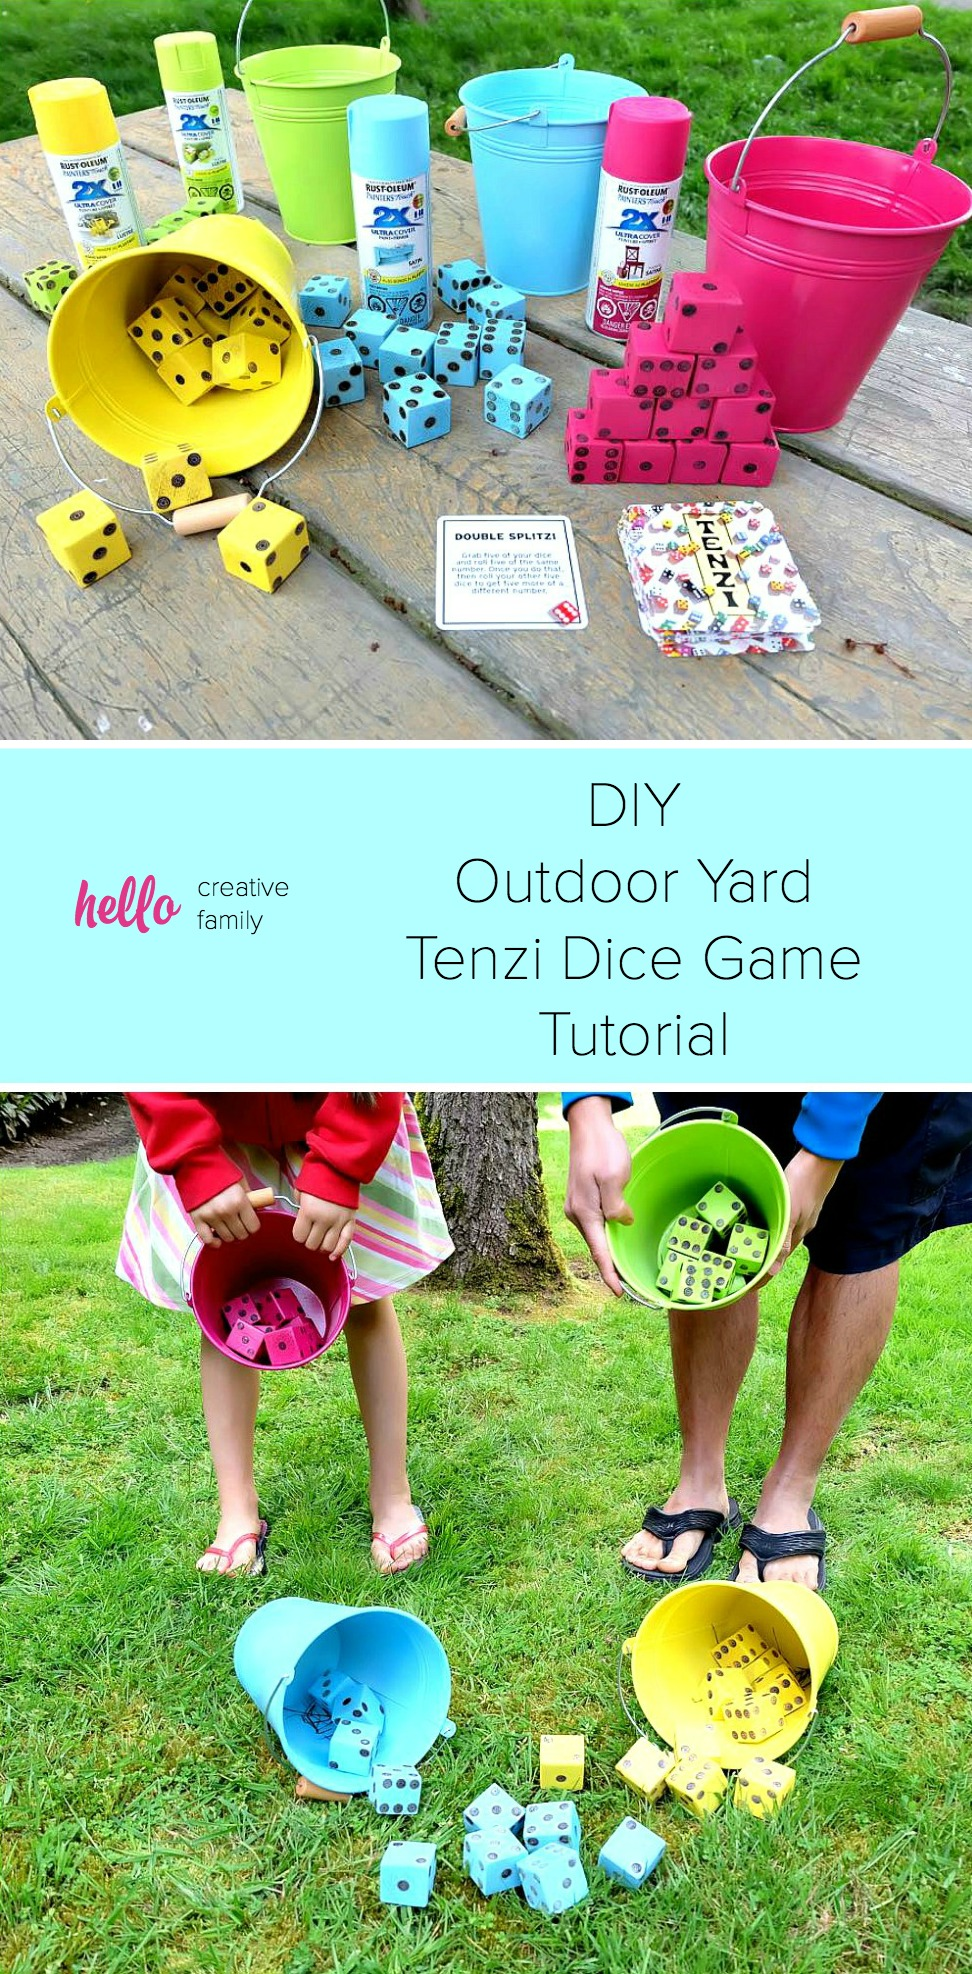 photograph regarding 77 Ways to Play Tenzi Printable titled Do-it-yourself Tenzi Outside Back garden Cube Recreation Guideline - Howdy Innovative